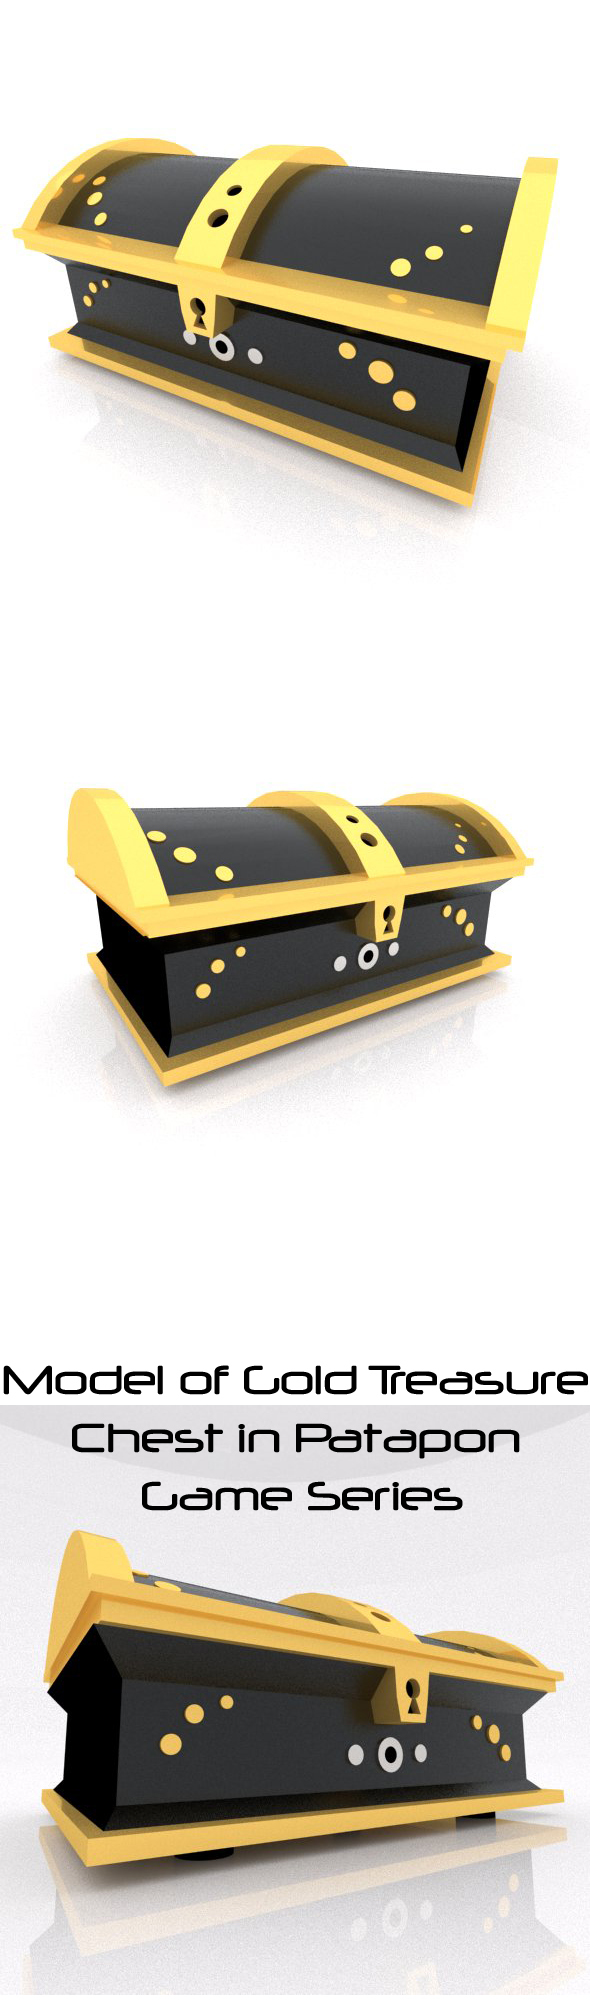 Gold Treasure Chest - 3DOcean Item for Sale